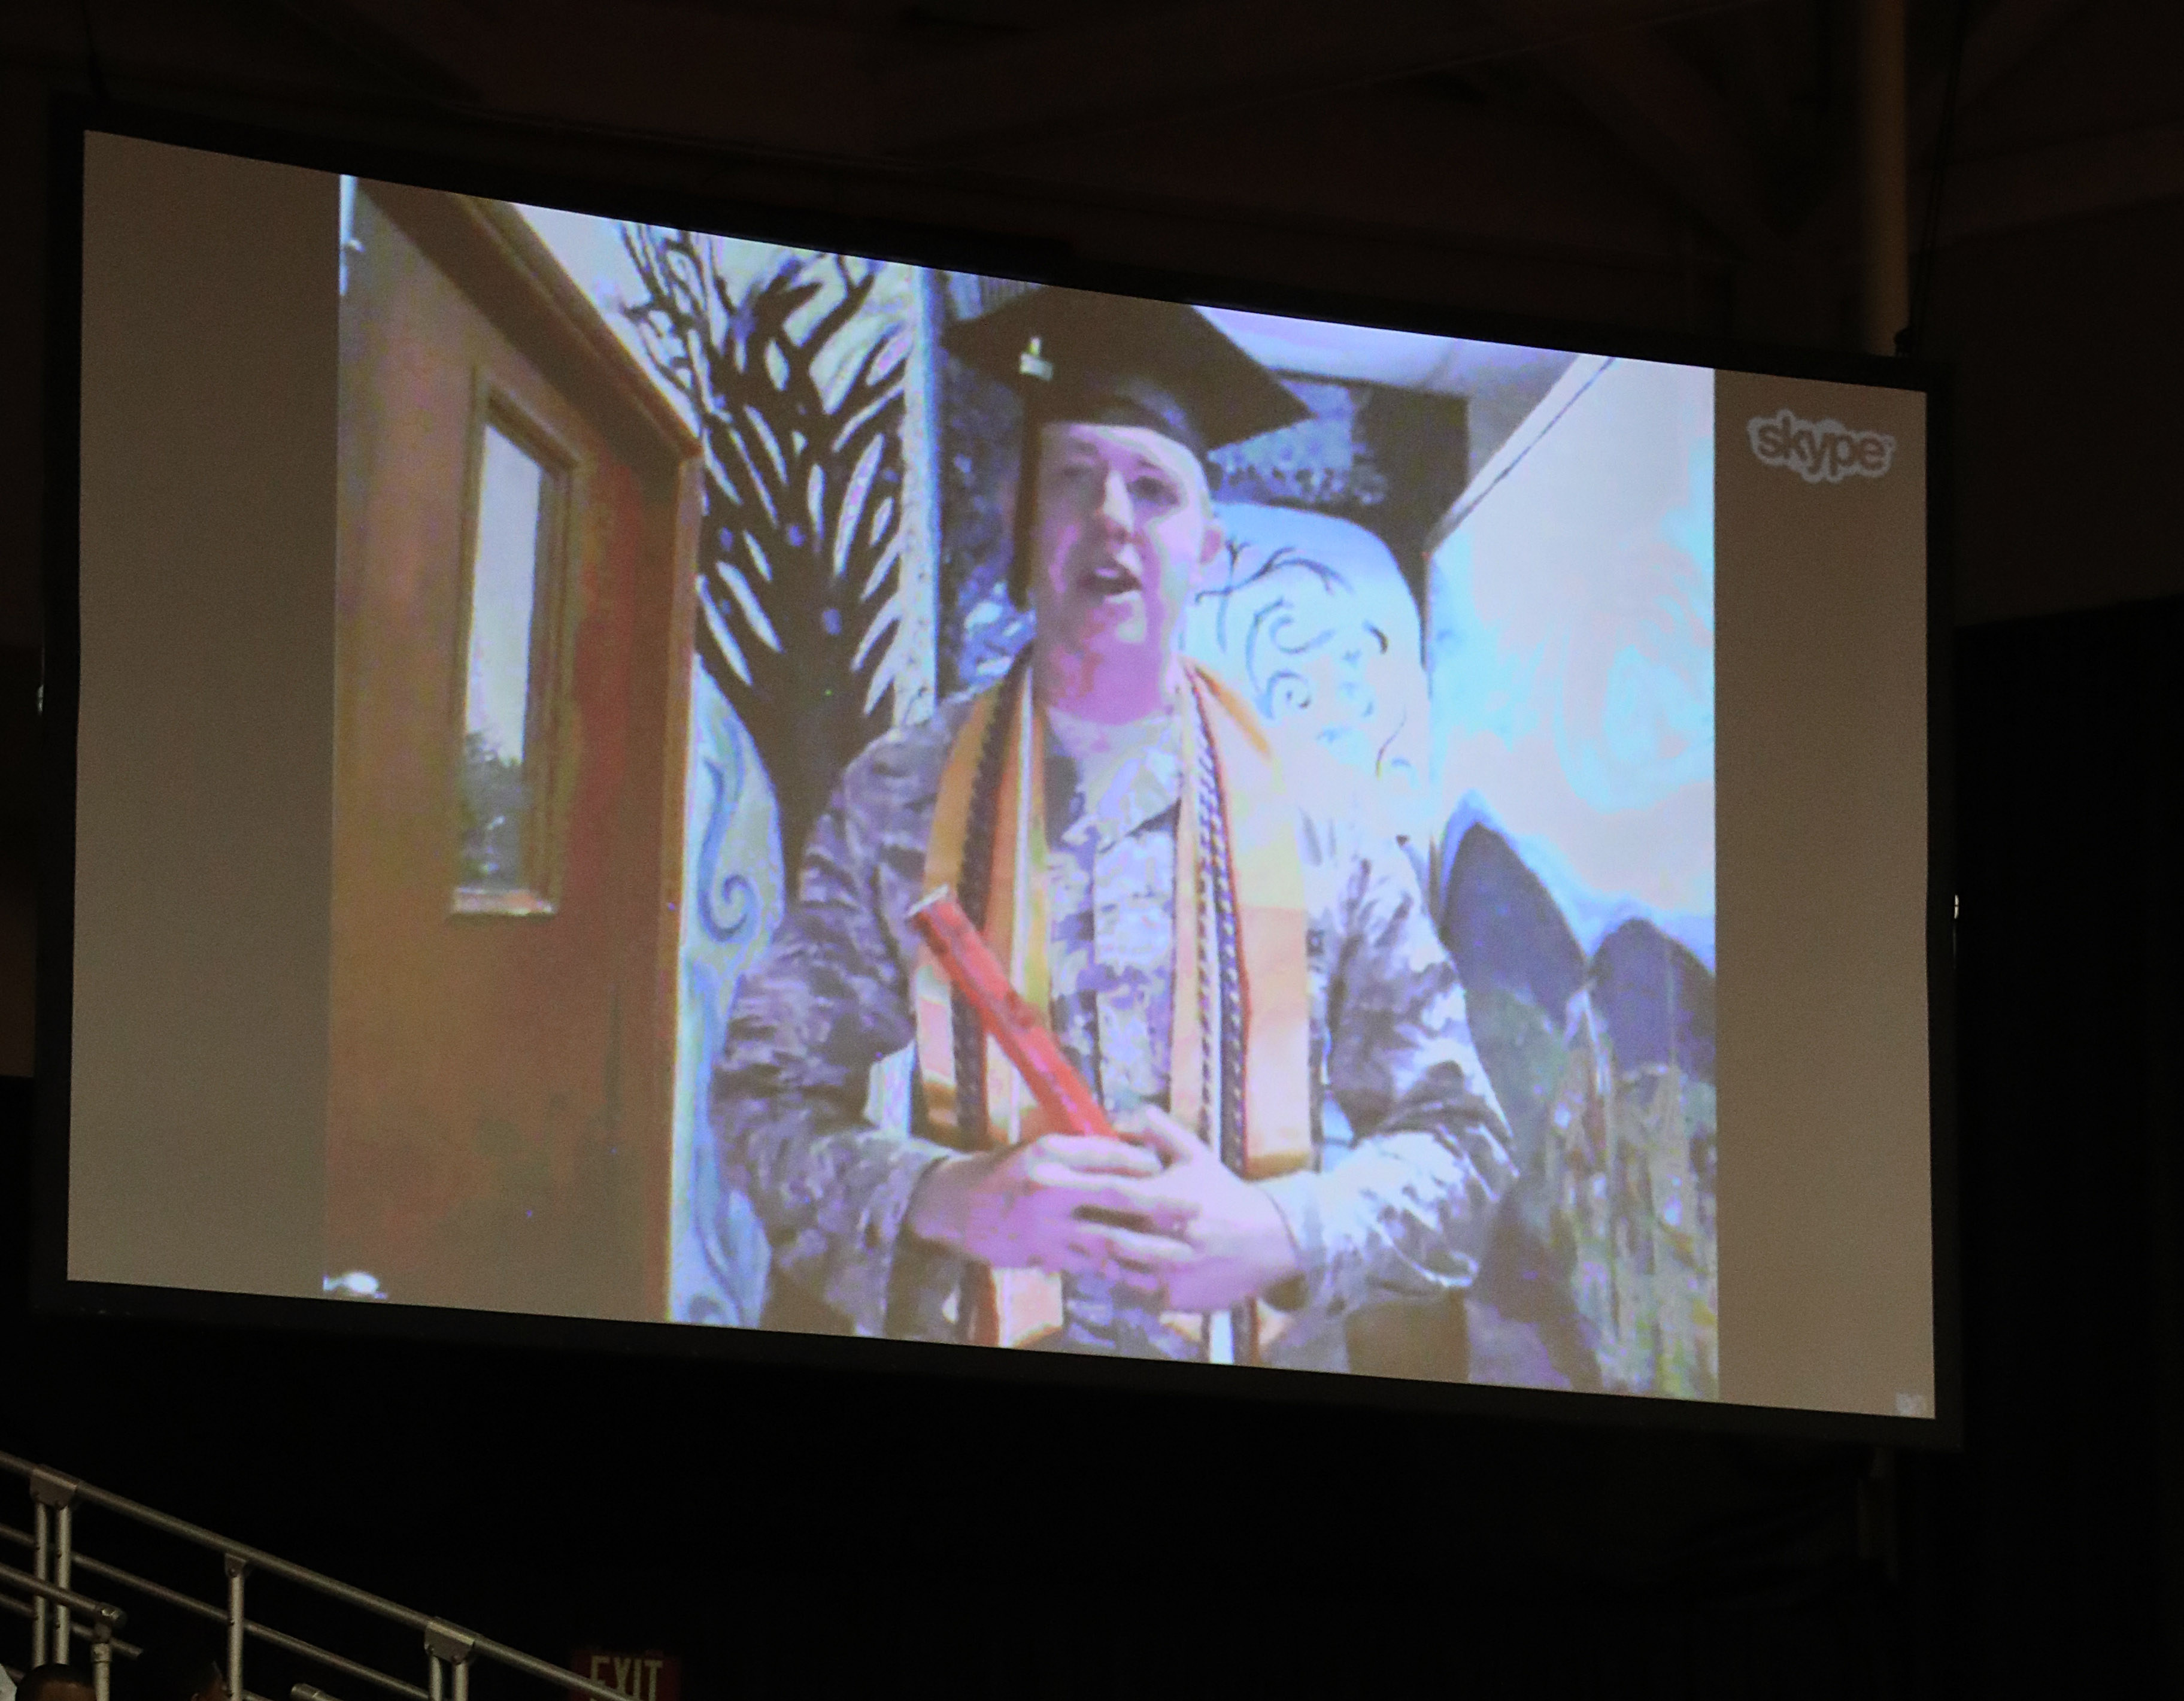 Sgt. Adam Winters, of Buffalo attends the SUNY Buffalo State graduation ceremony via Skype on Saturday, May 13, 2017. He is deployed with the Air National Guard's  109th Airlift Wing in Southwest Asia.  (Sharon Cantillon/Buffalo News)